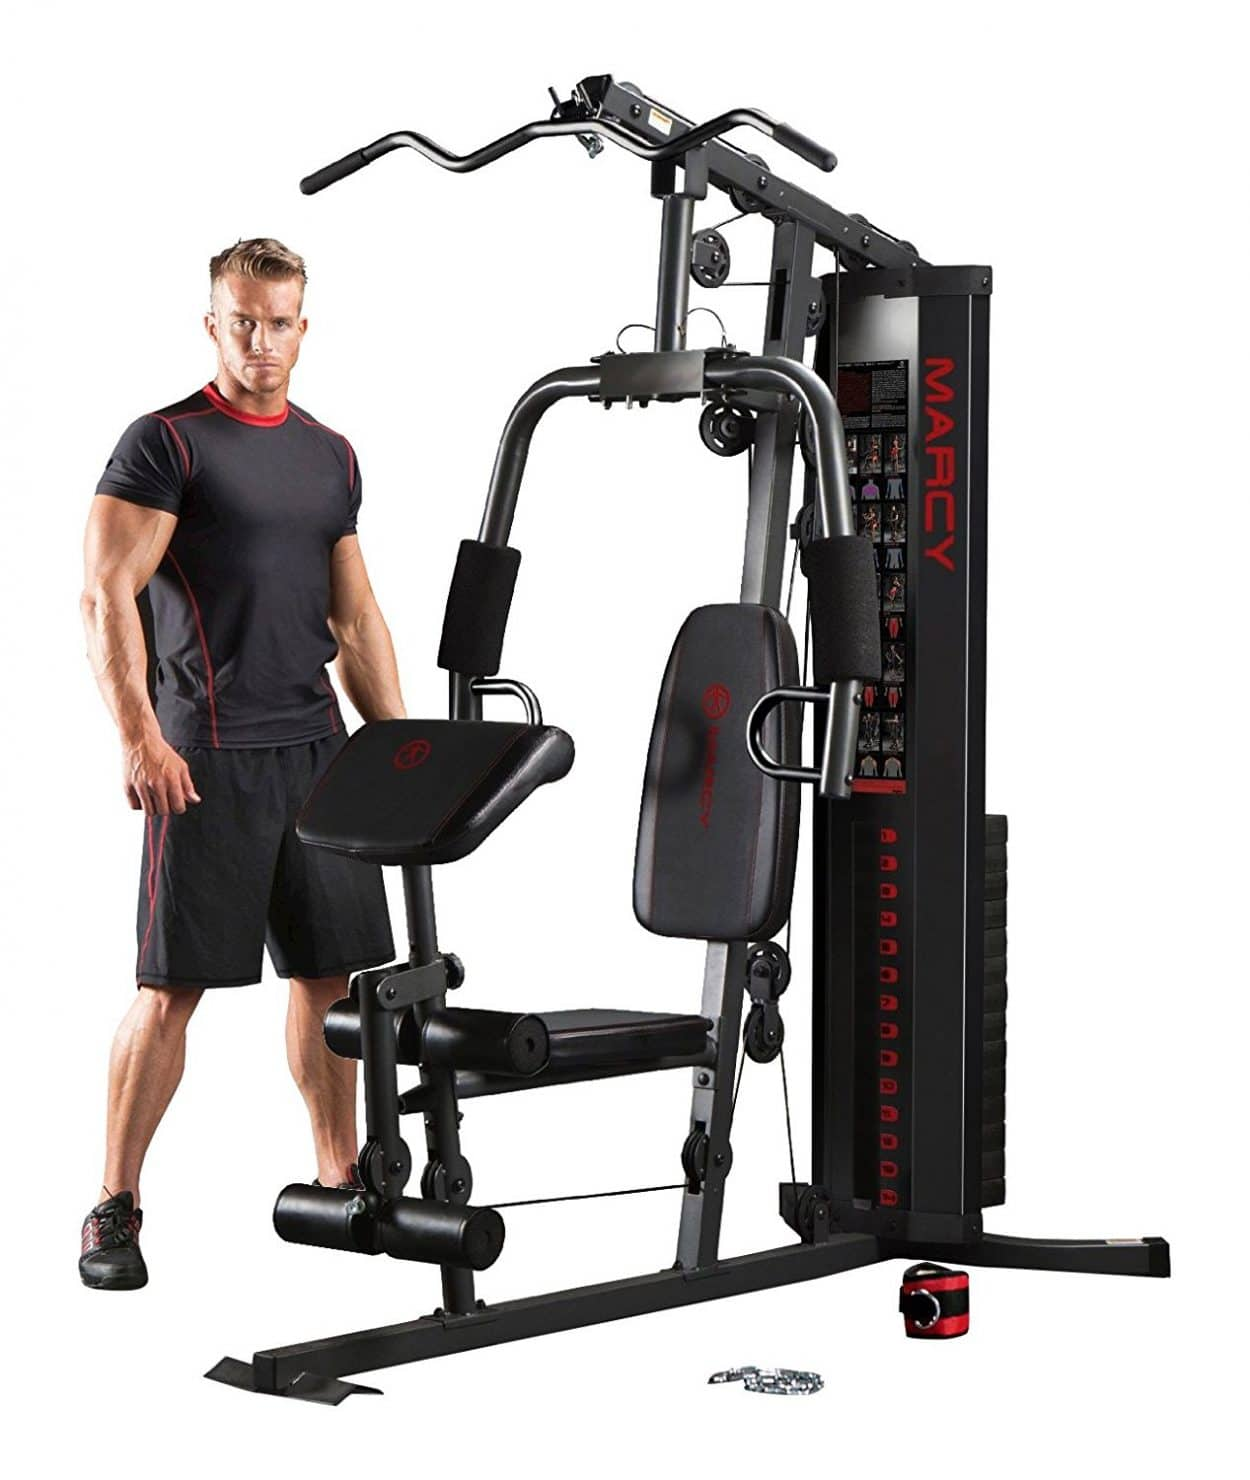 Marcy Eclipse HG3000 Compact Home Gym with Weight Stack - 68kg